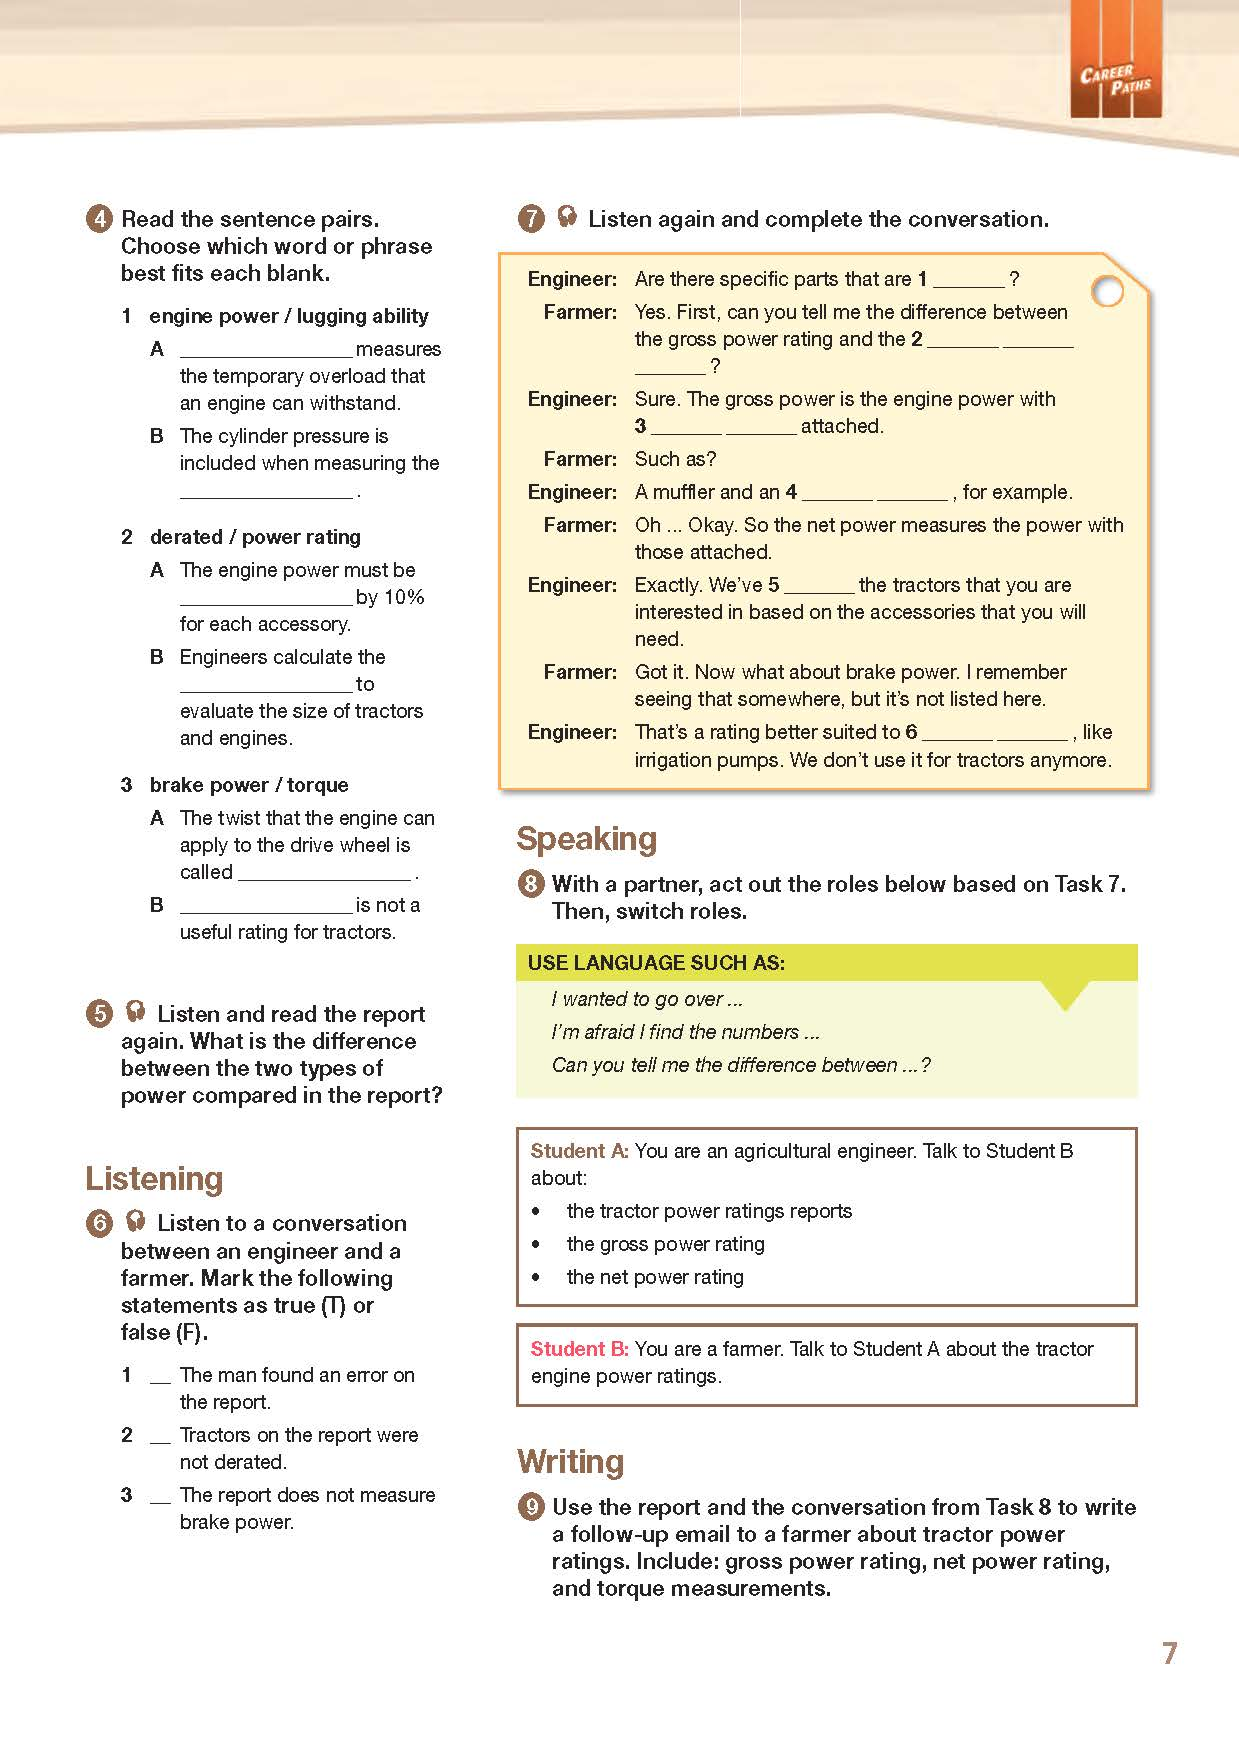 ESP English for Specific Purposes - Career Paths: Agriculture Engineering- Sample Page 4